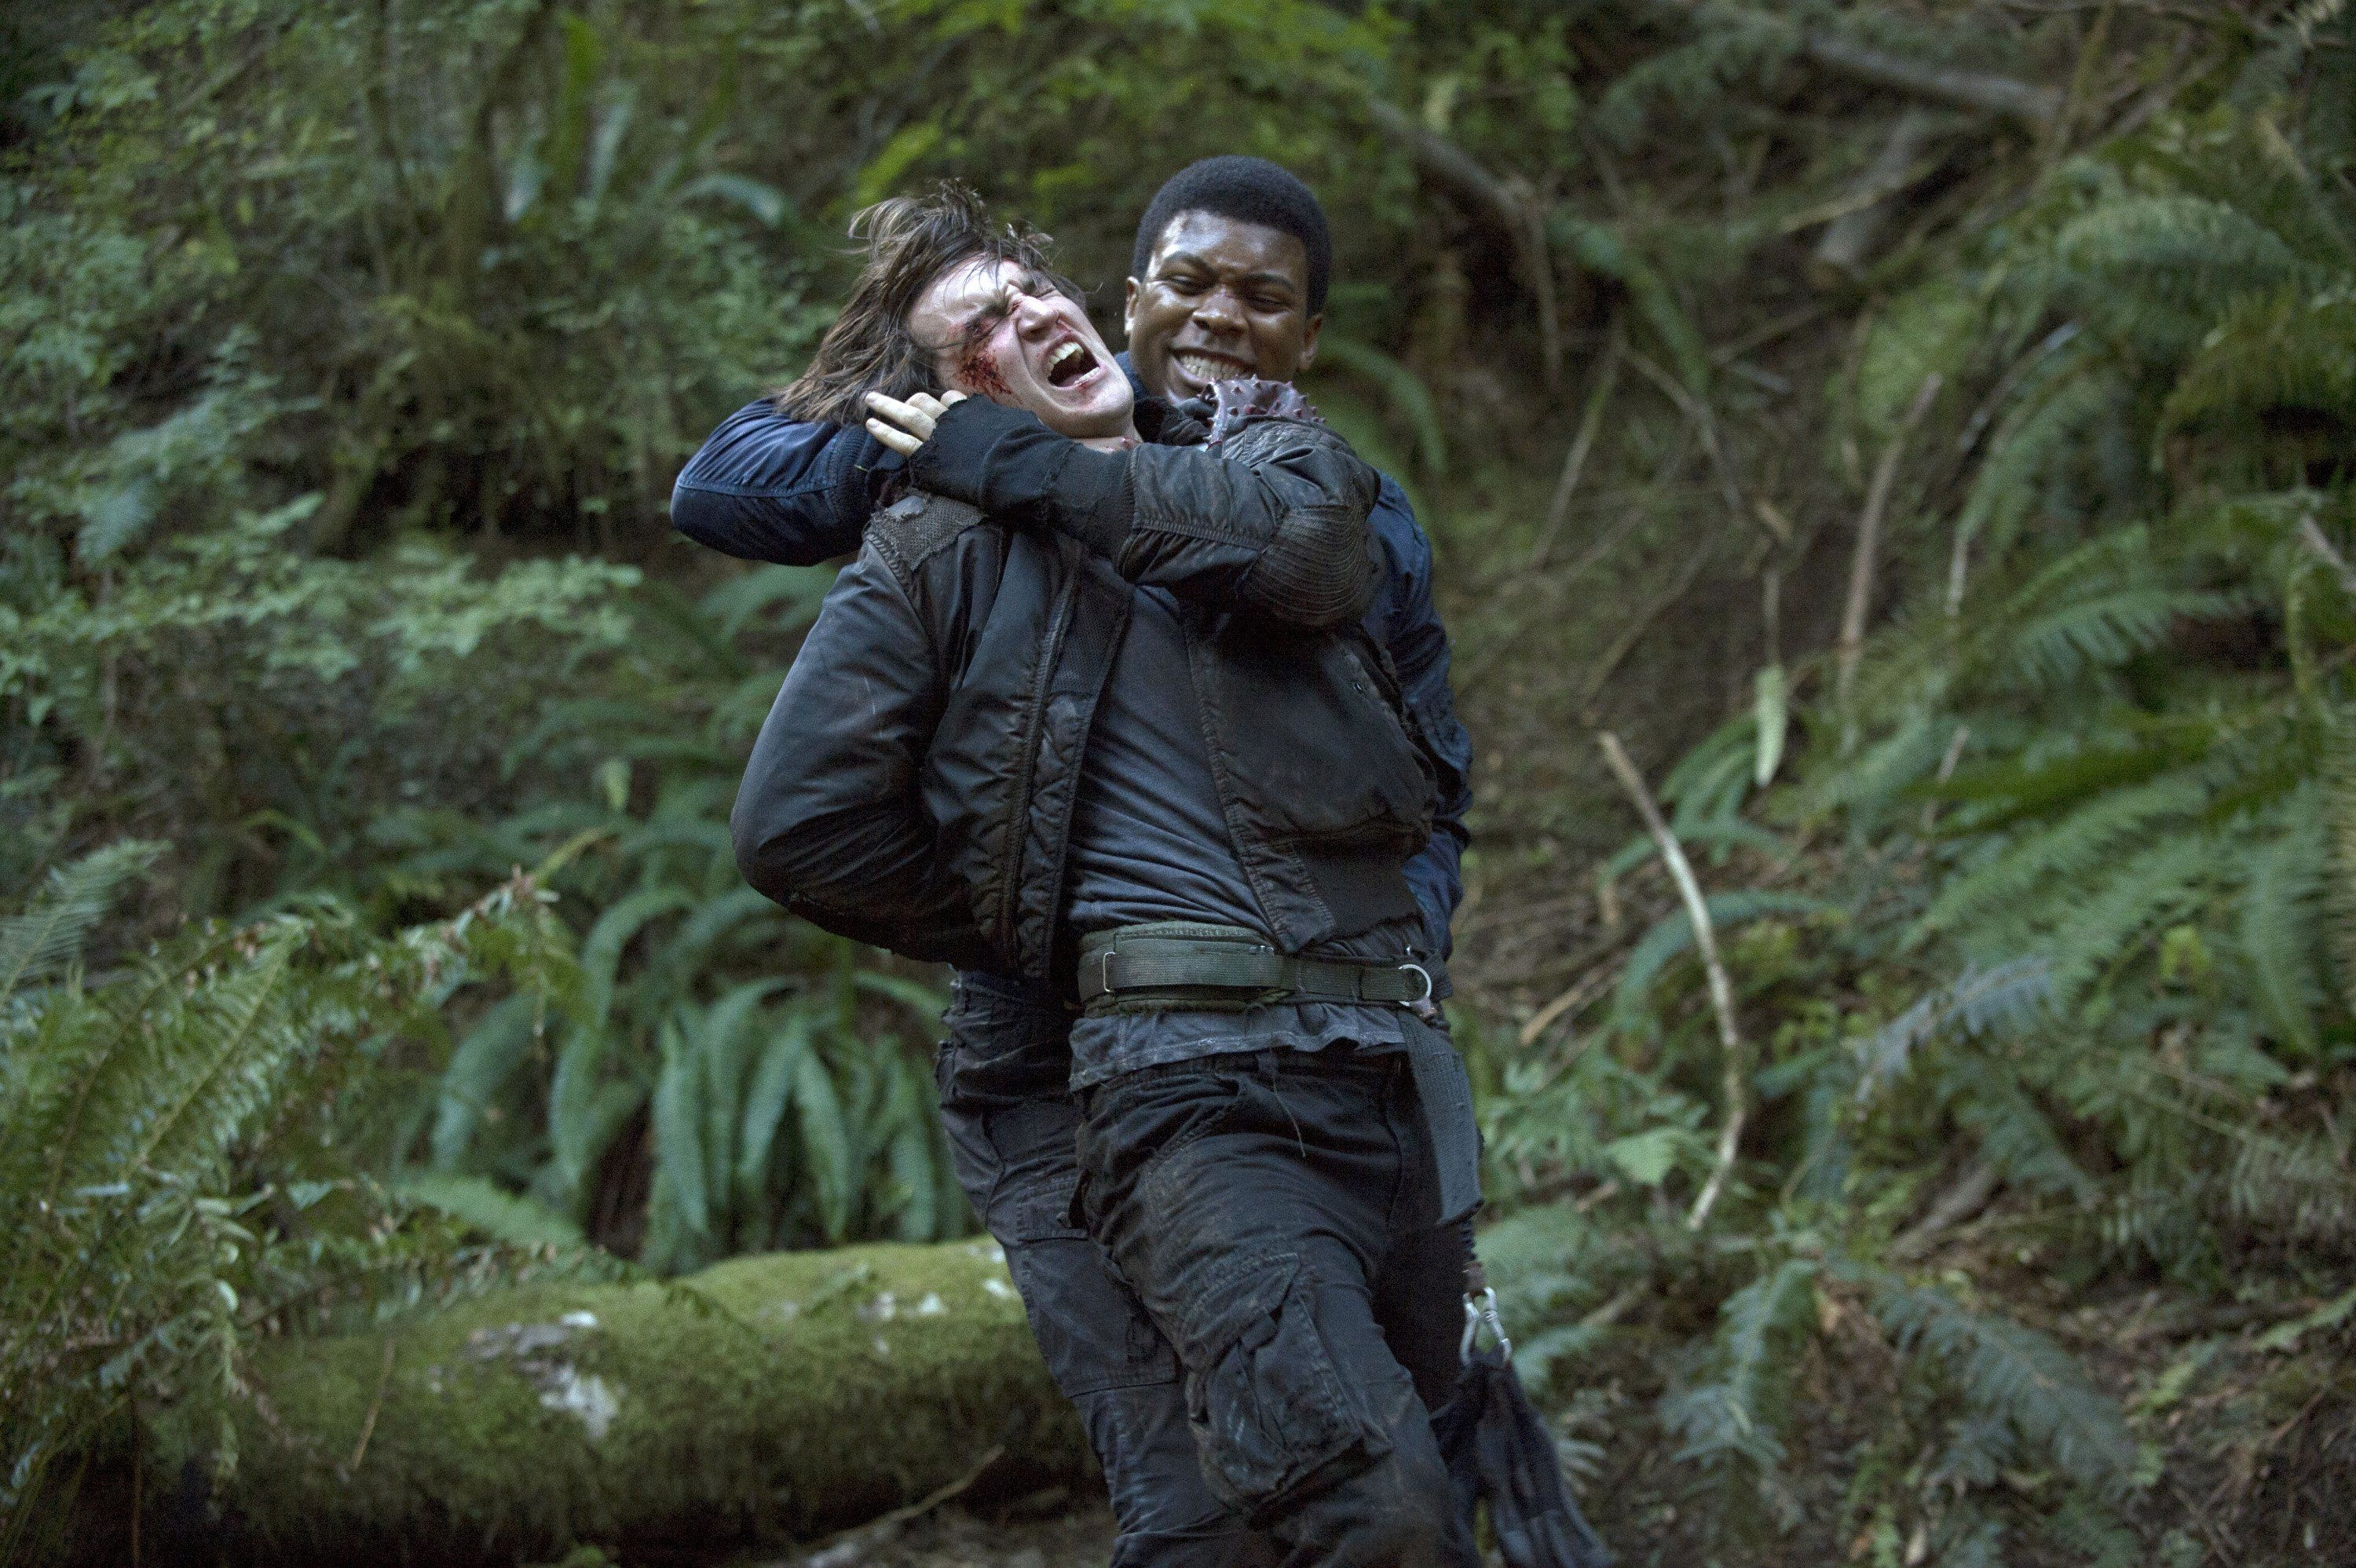 The 100 - Season 1 Episode 2 Still | The 100 | The 100, The